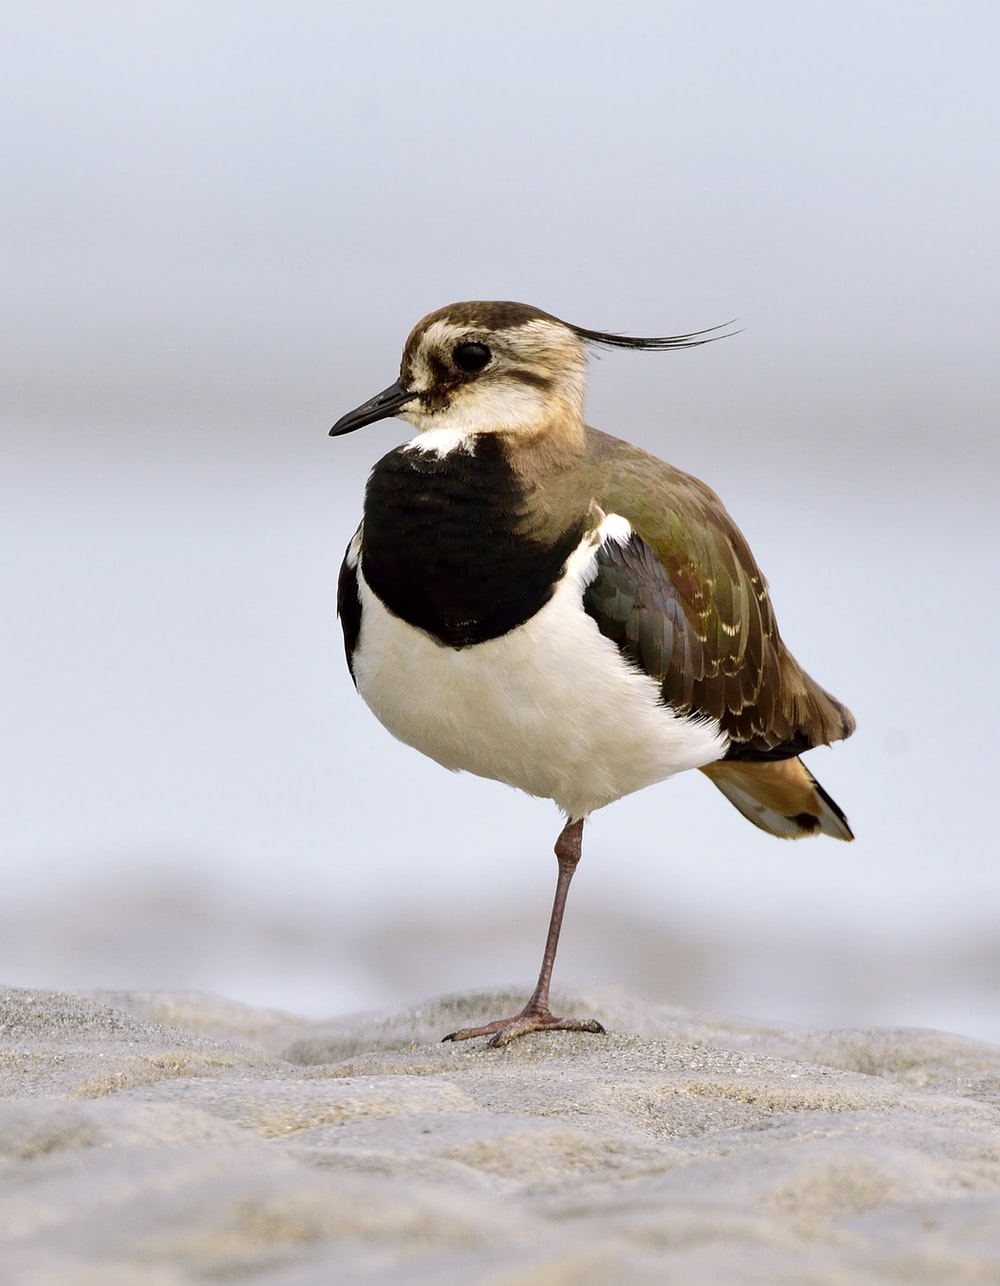 black and white bird on brown sand during daytime